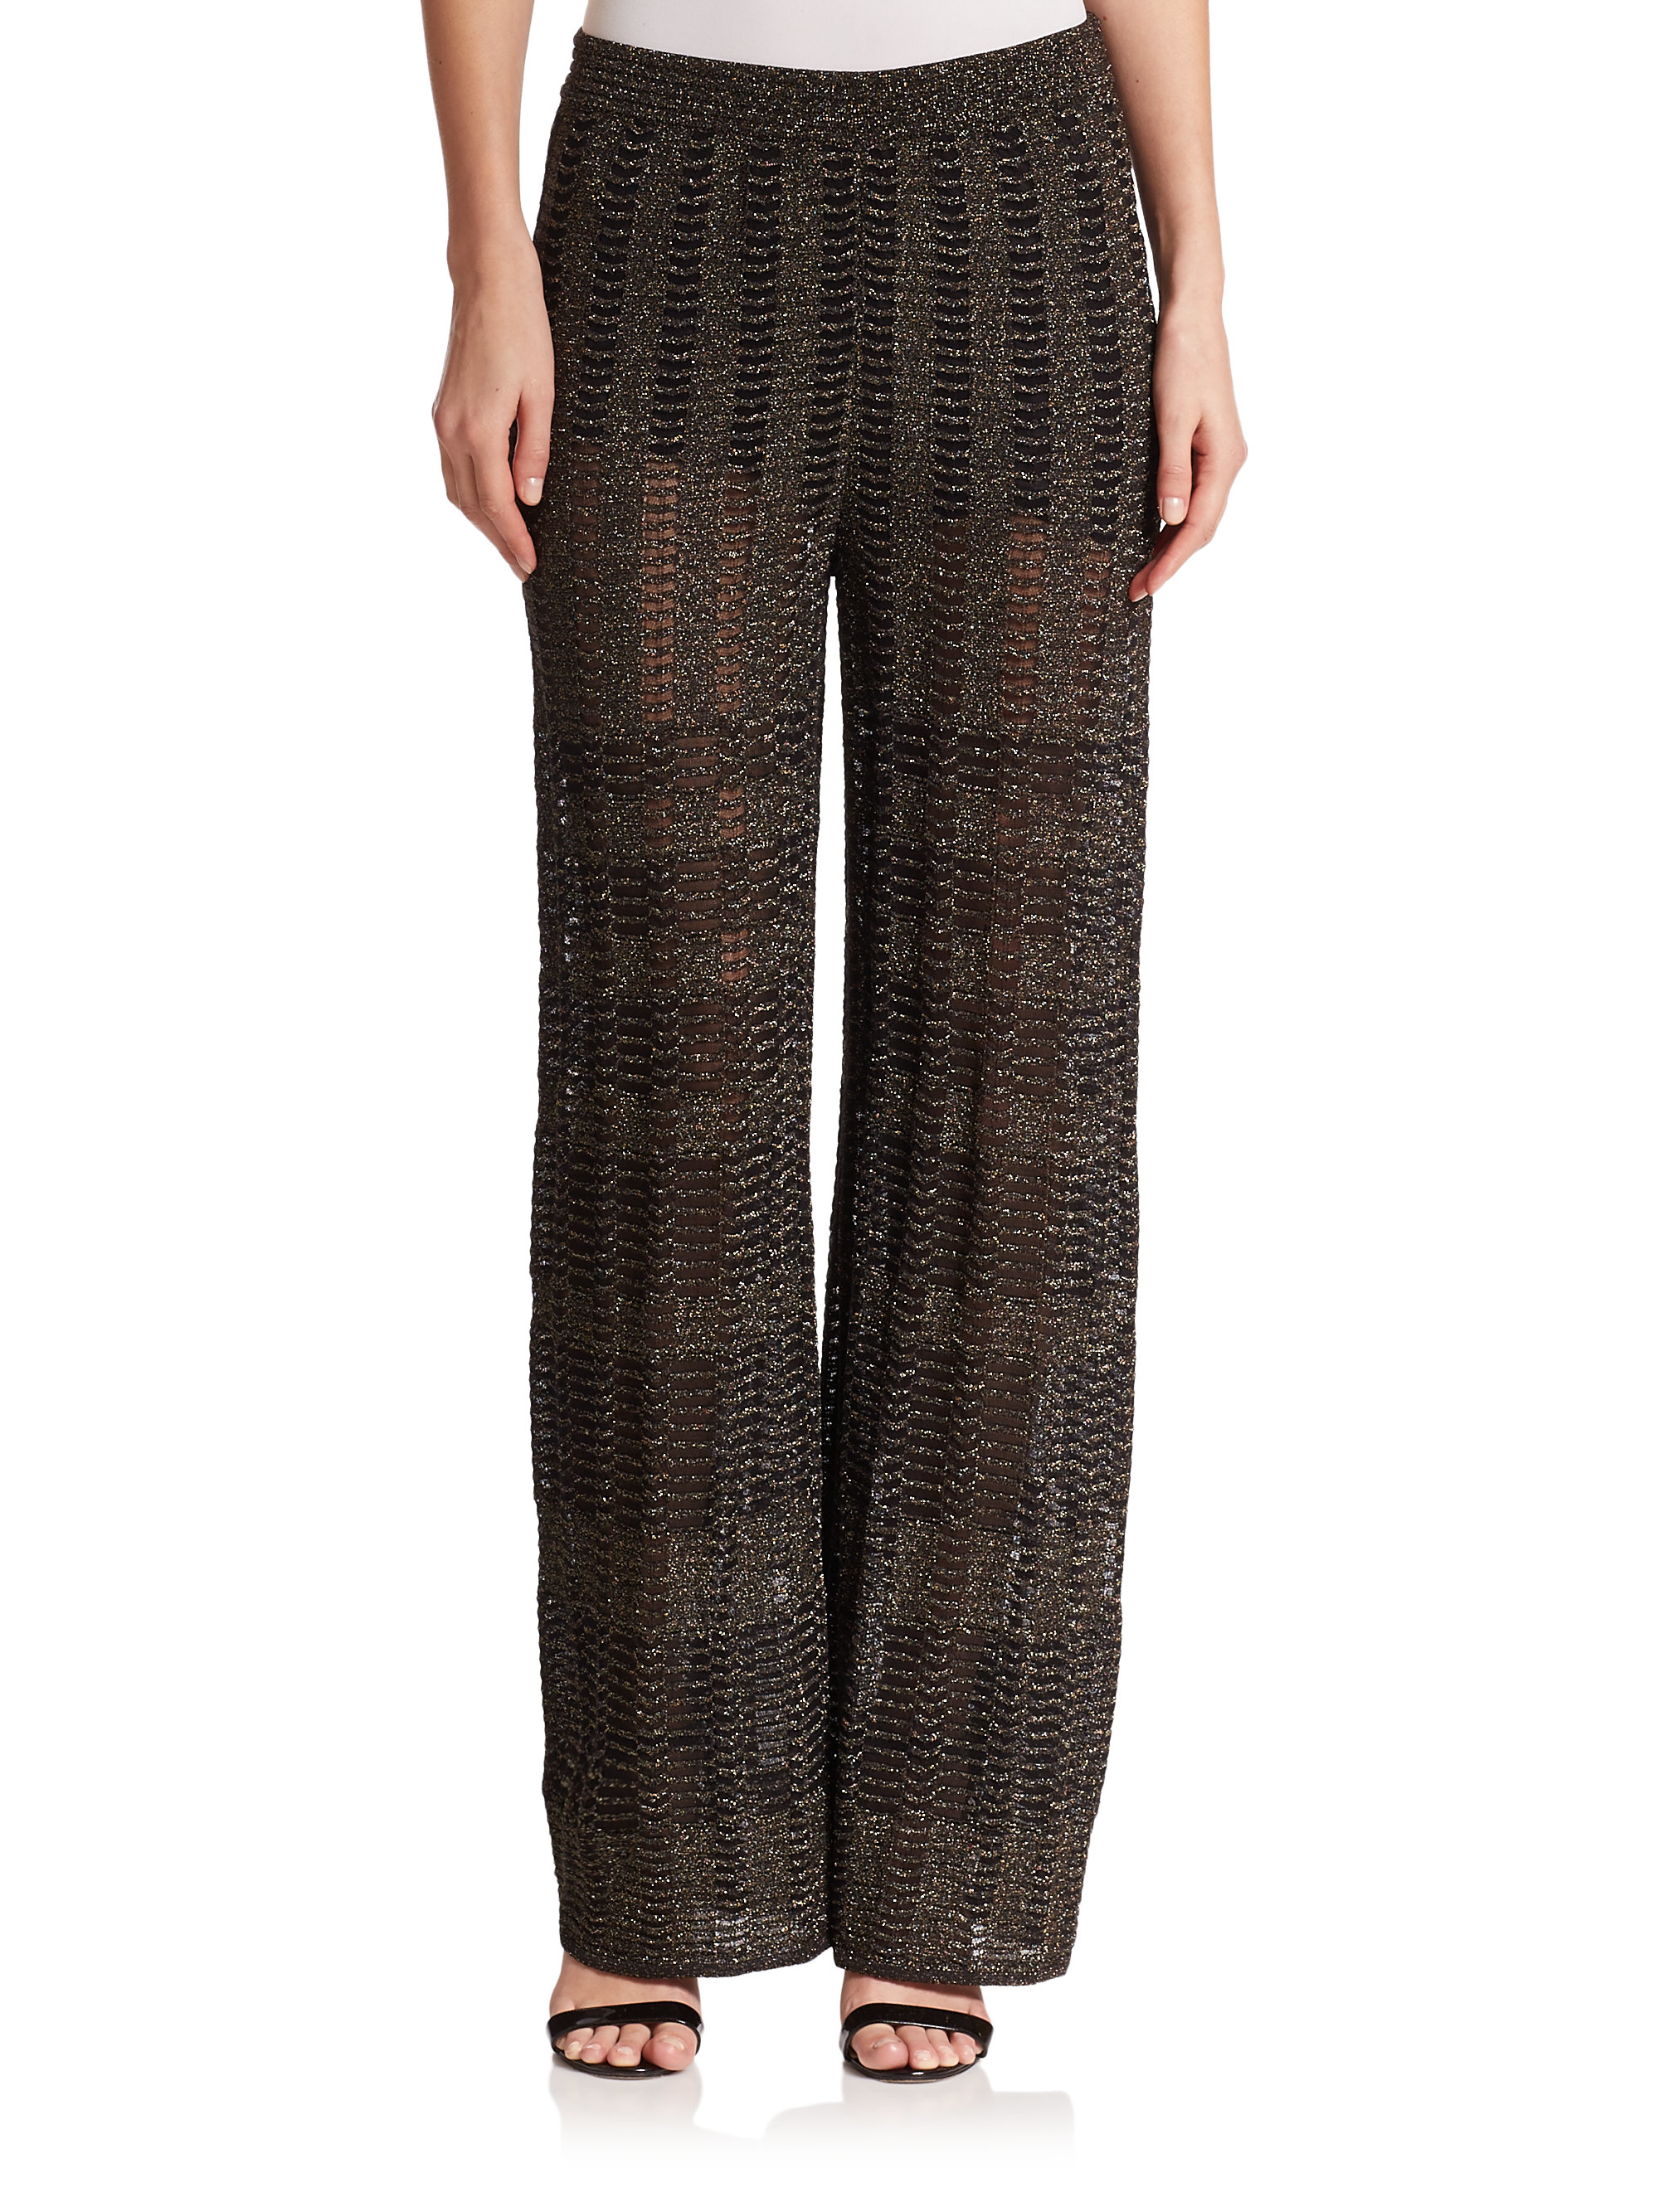 Lyst - M Missoni Metallic Knit Textured Pants in Black